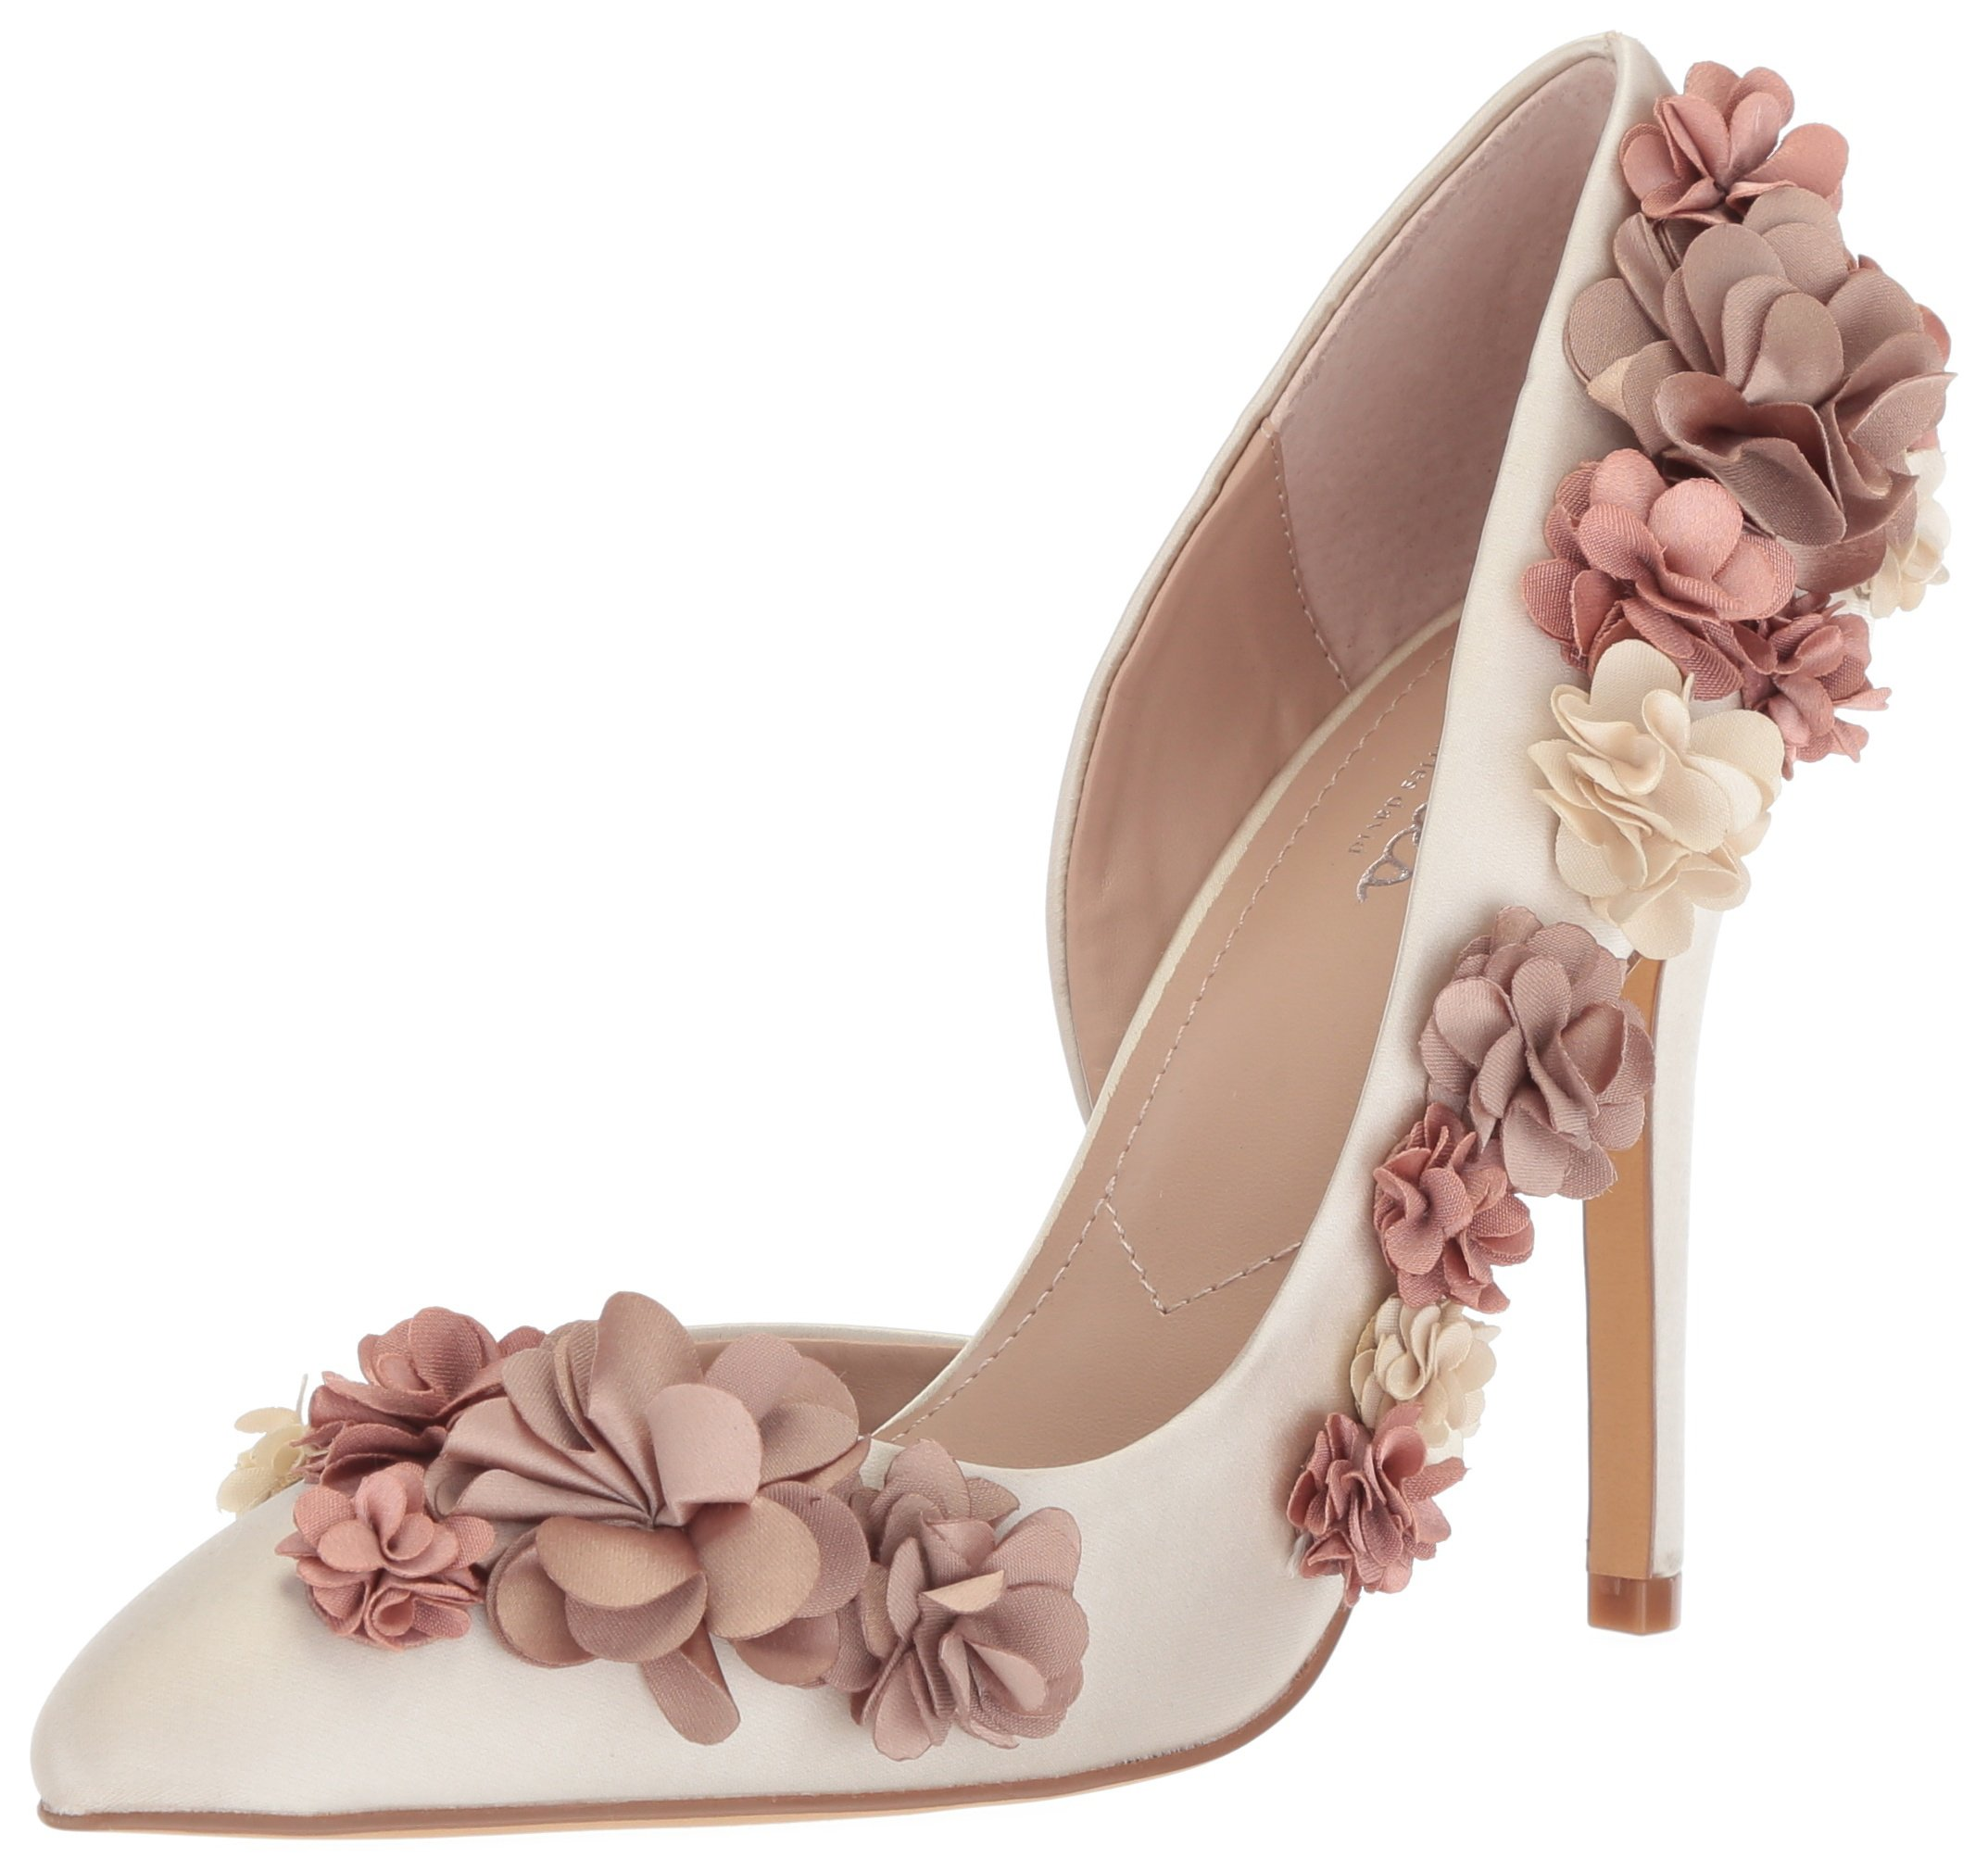 Charles by Charles David Women's Polly Pump, Ivory, 9.5 M US by Charles by Charles David